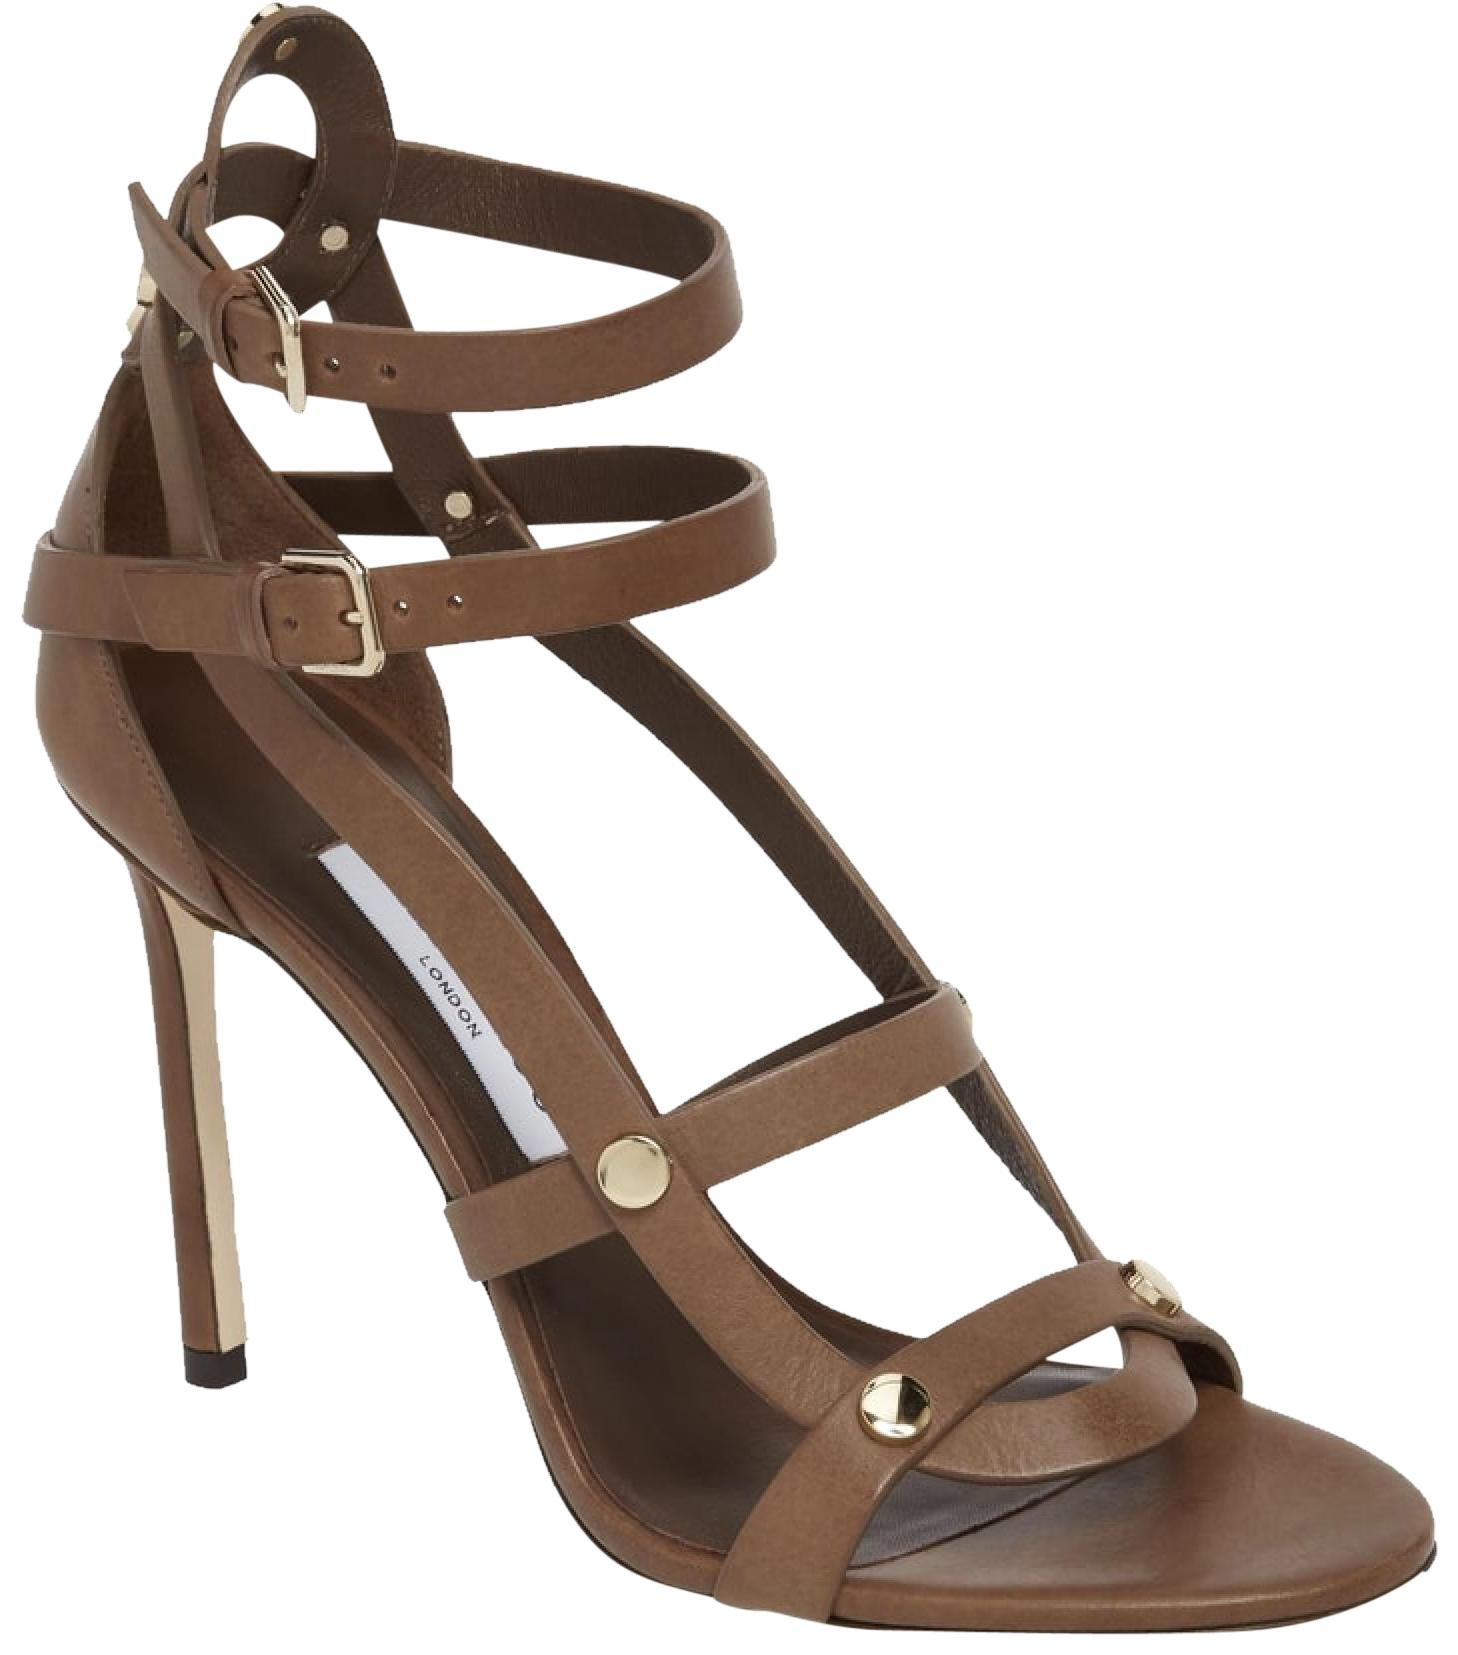 Jimmy Choo Brown Taupe Motoko Studded Cage Sandals Size EU 37.5 (Approx. US 7.5) Regular (M, B)